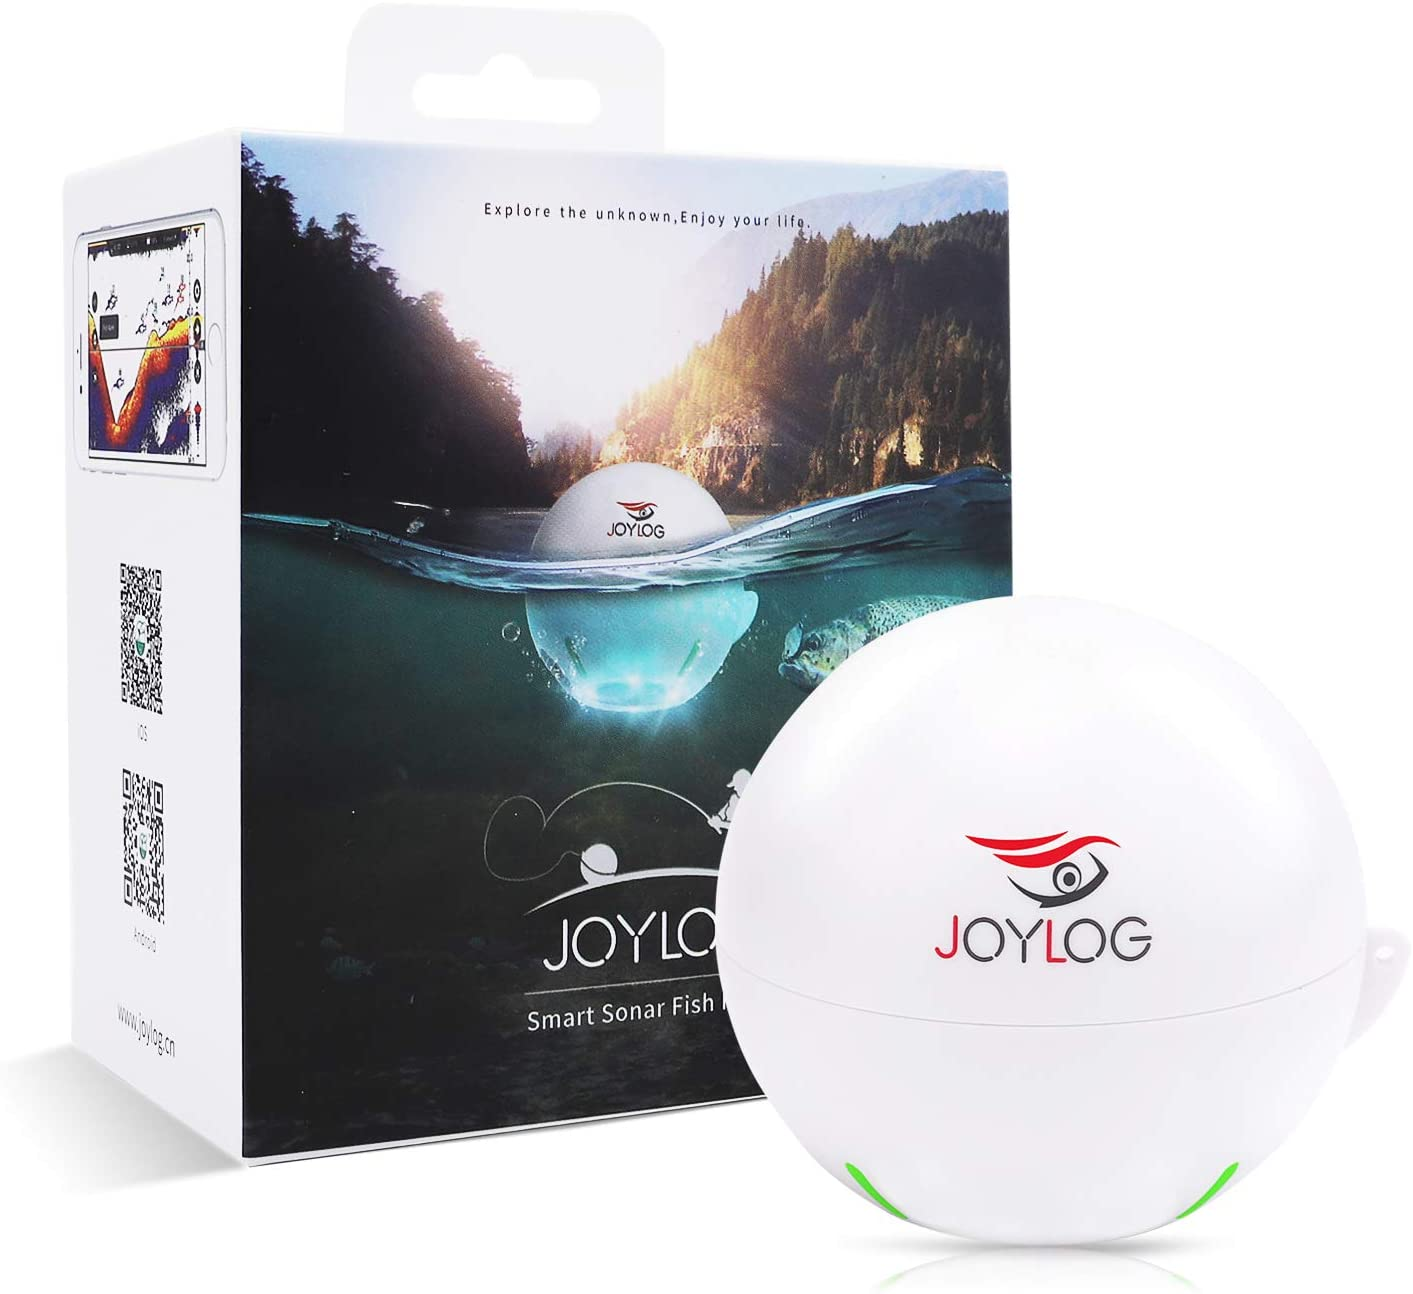 JOYLOG Portable Wireless Bluetooth Fish Finder Smart Sonar Depth Finder